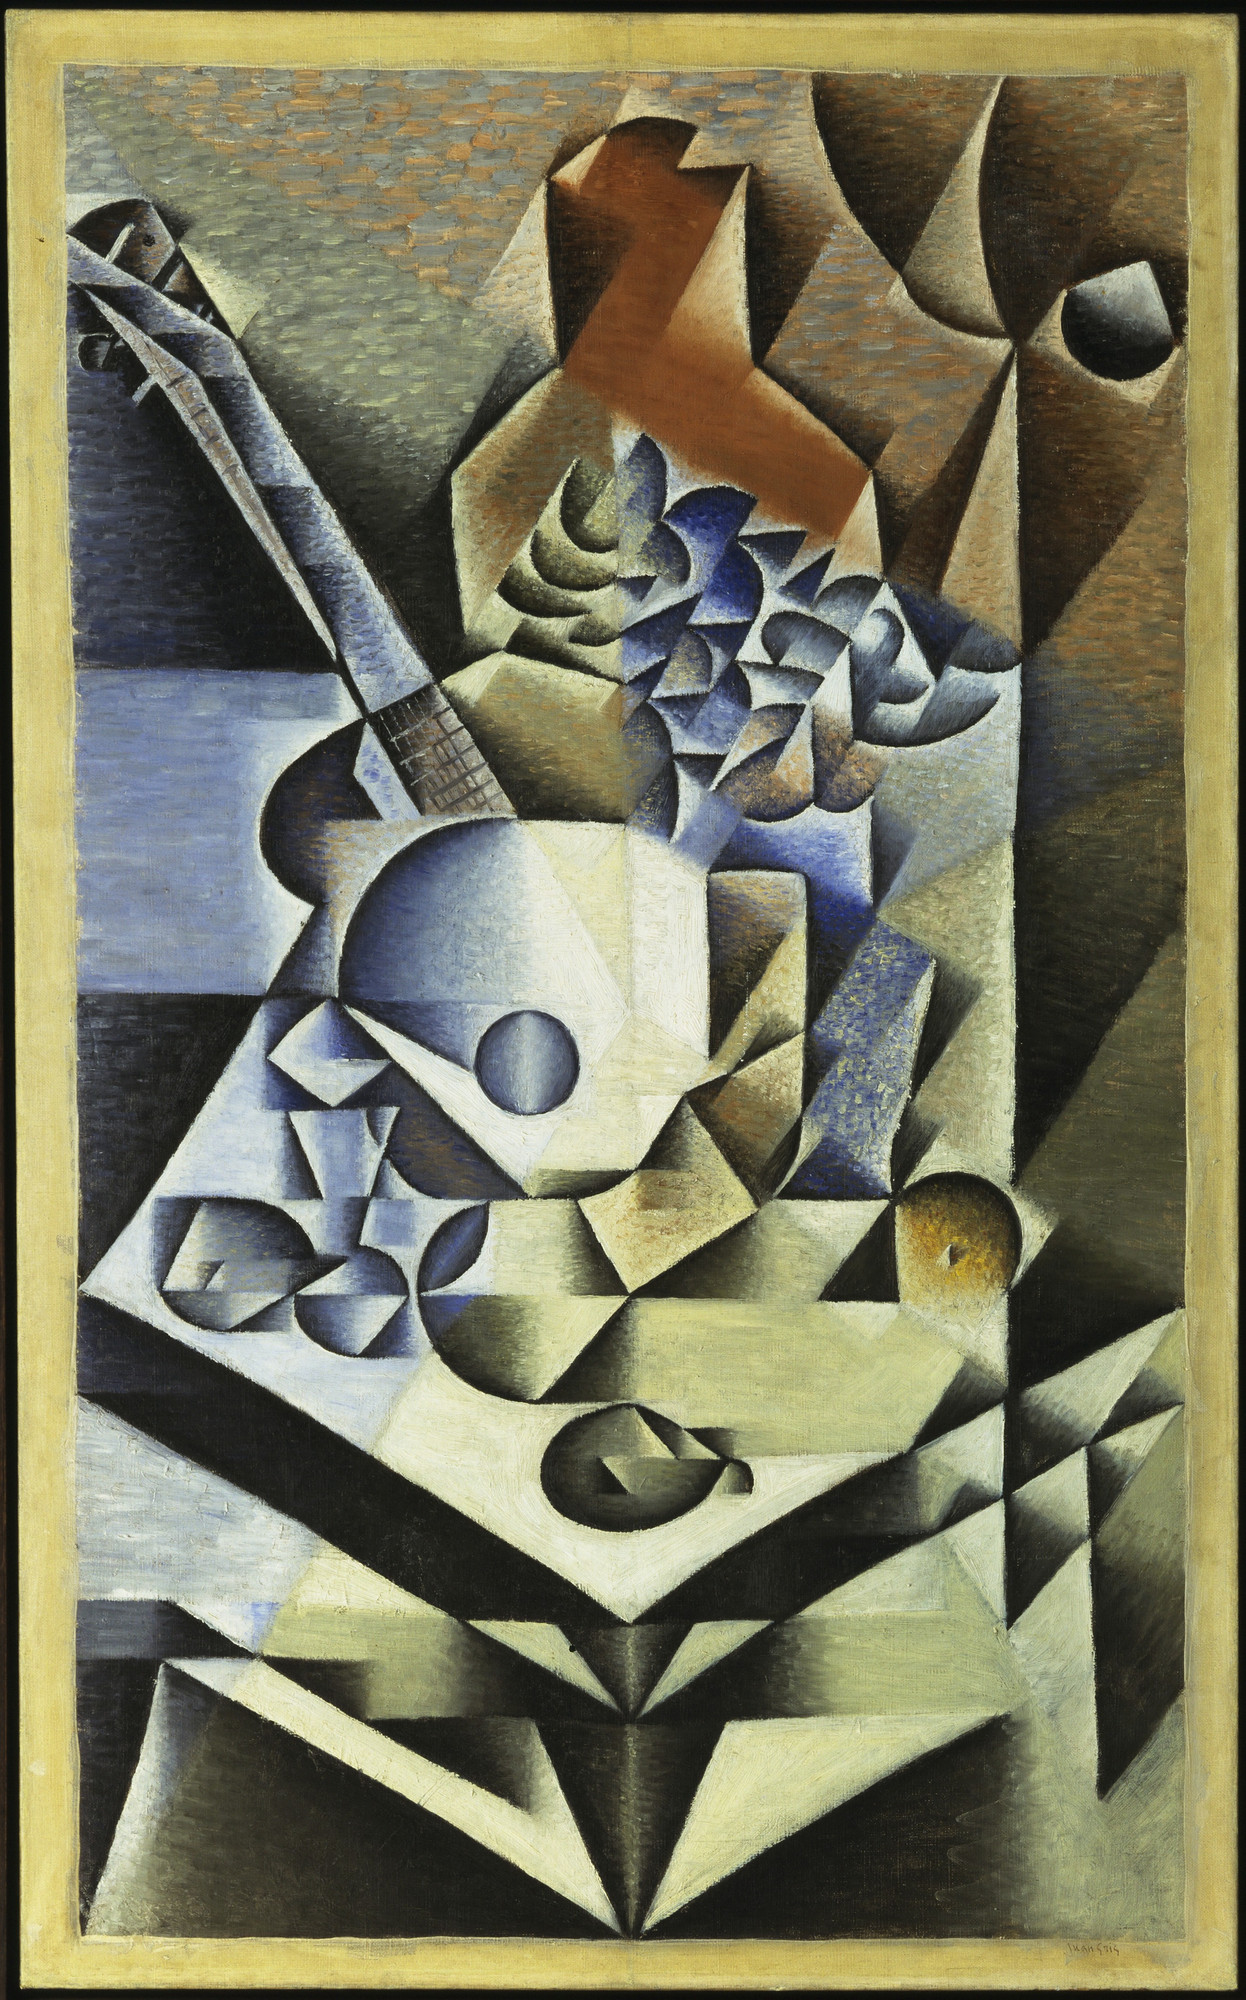 Juan Gris. Still Life with Flowers. 1912